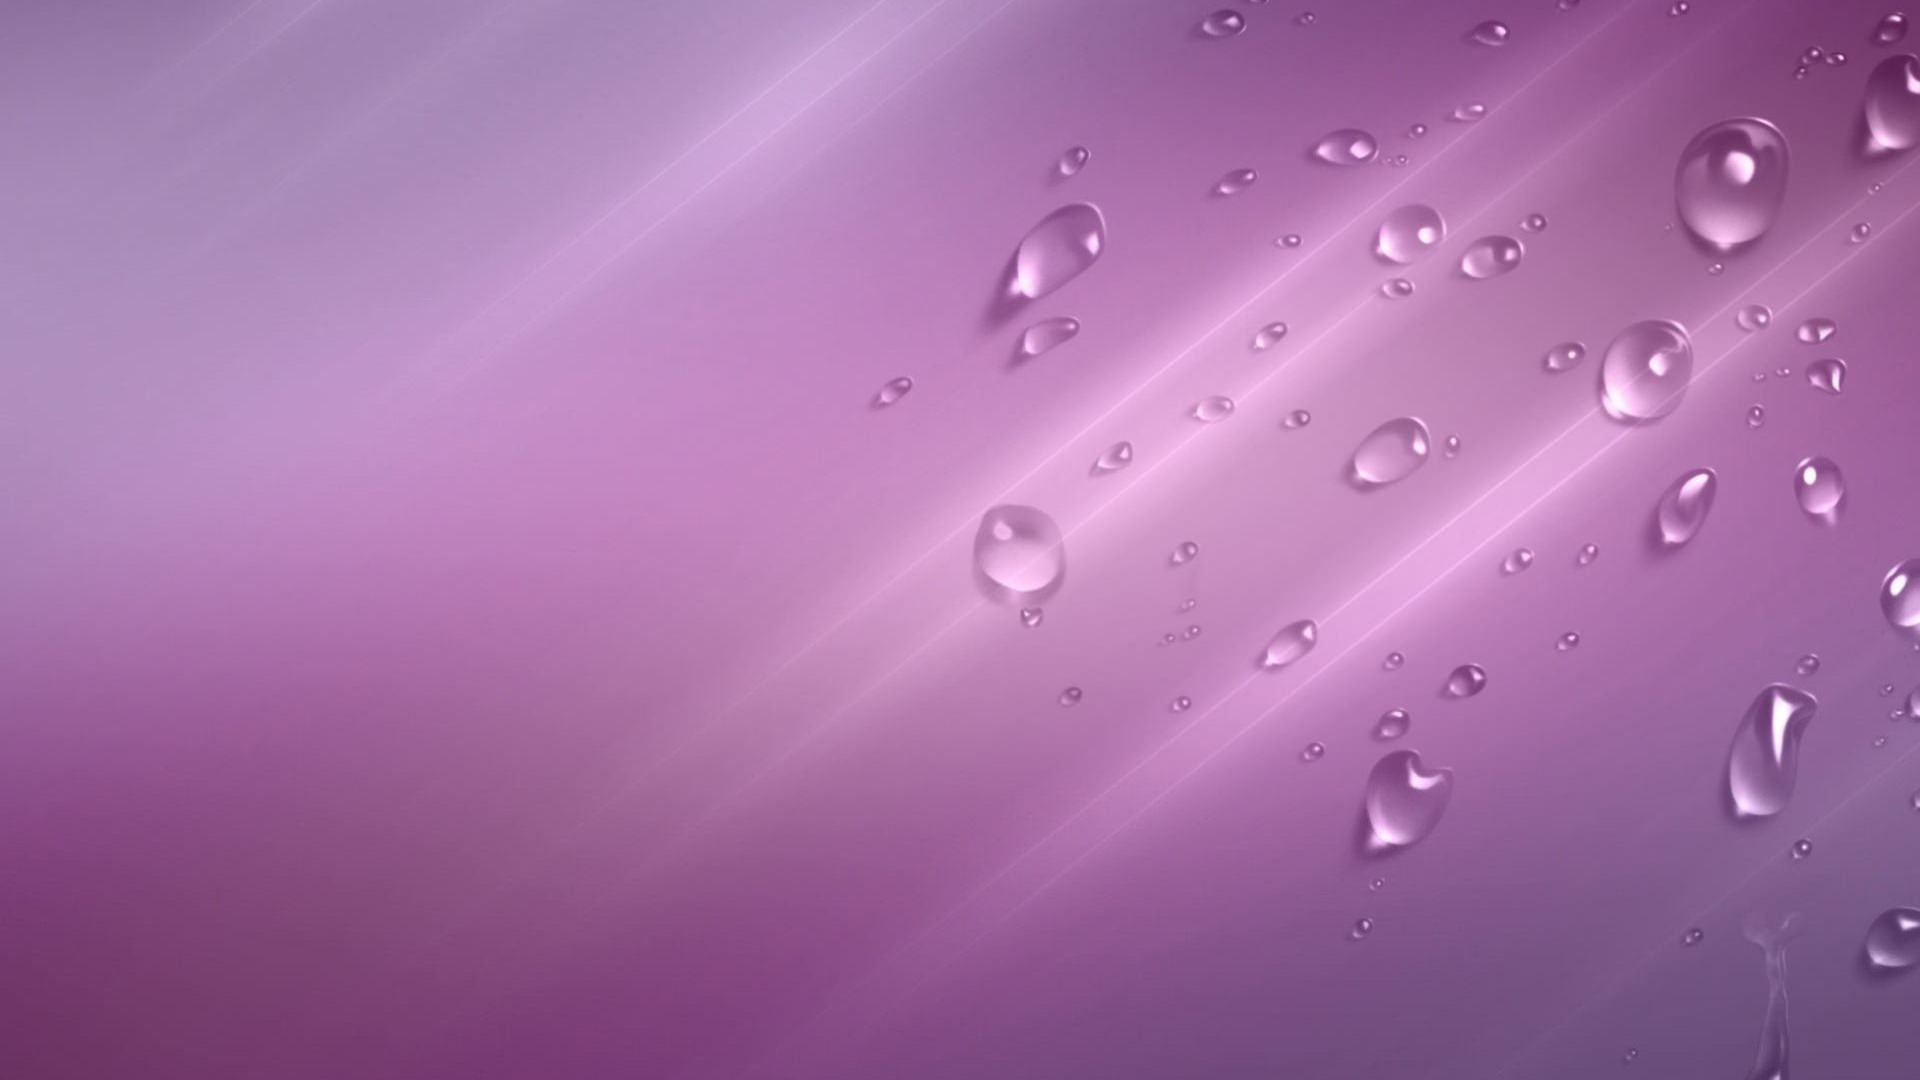 Water Bubbles on Purple Background